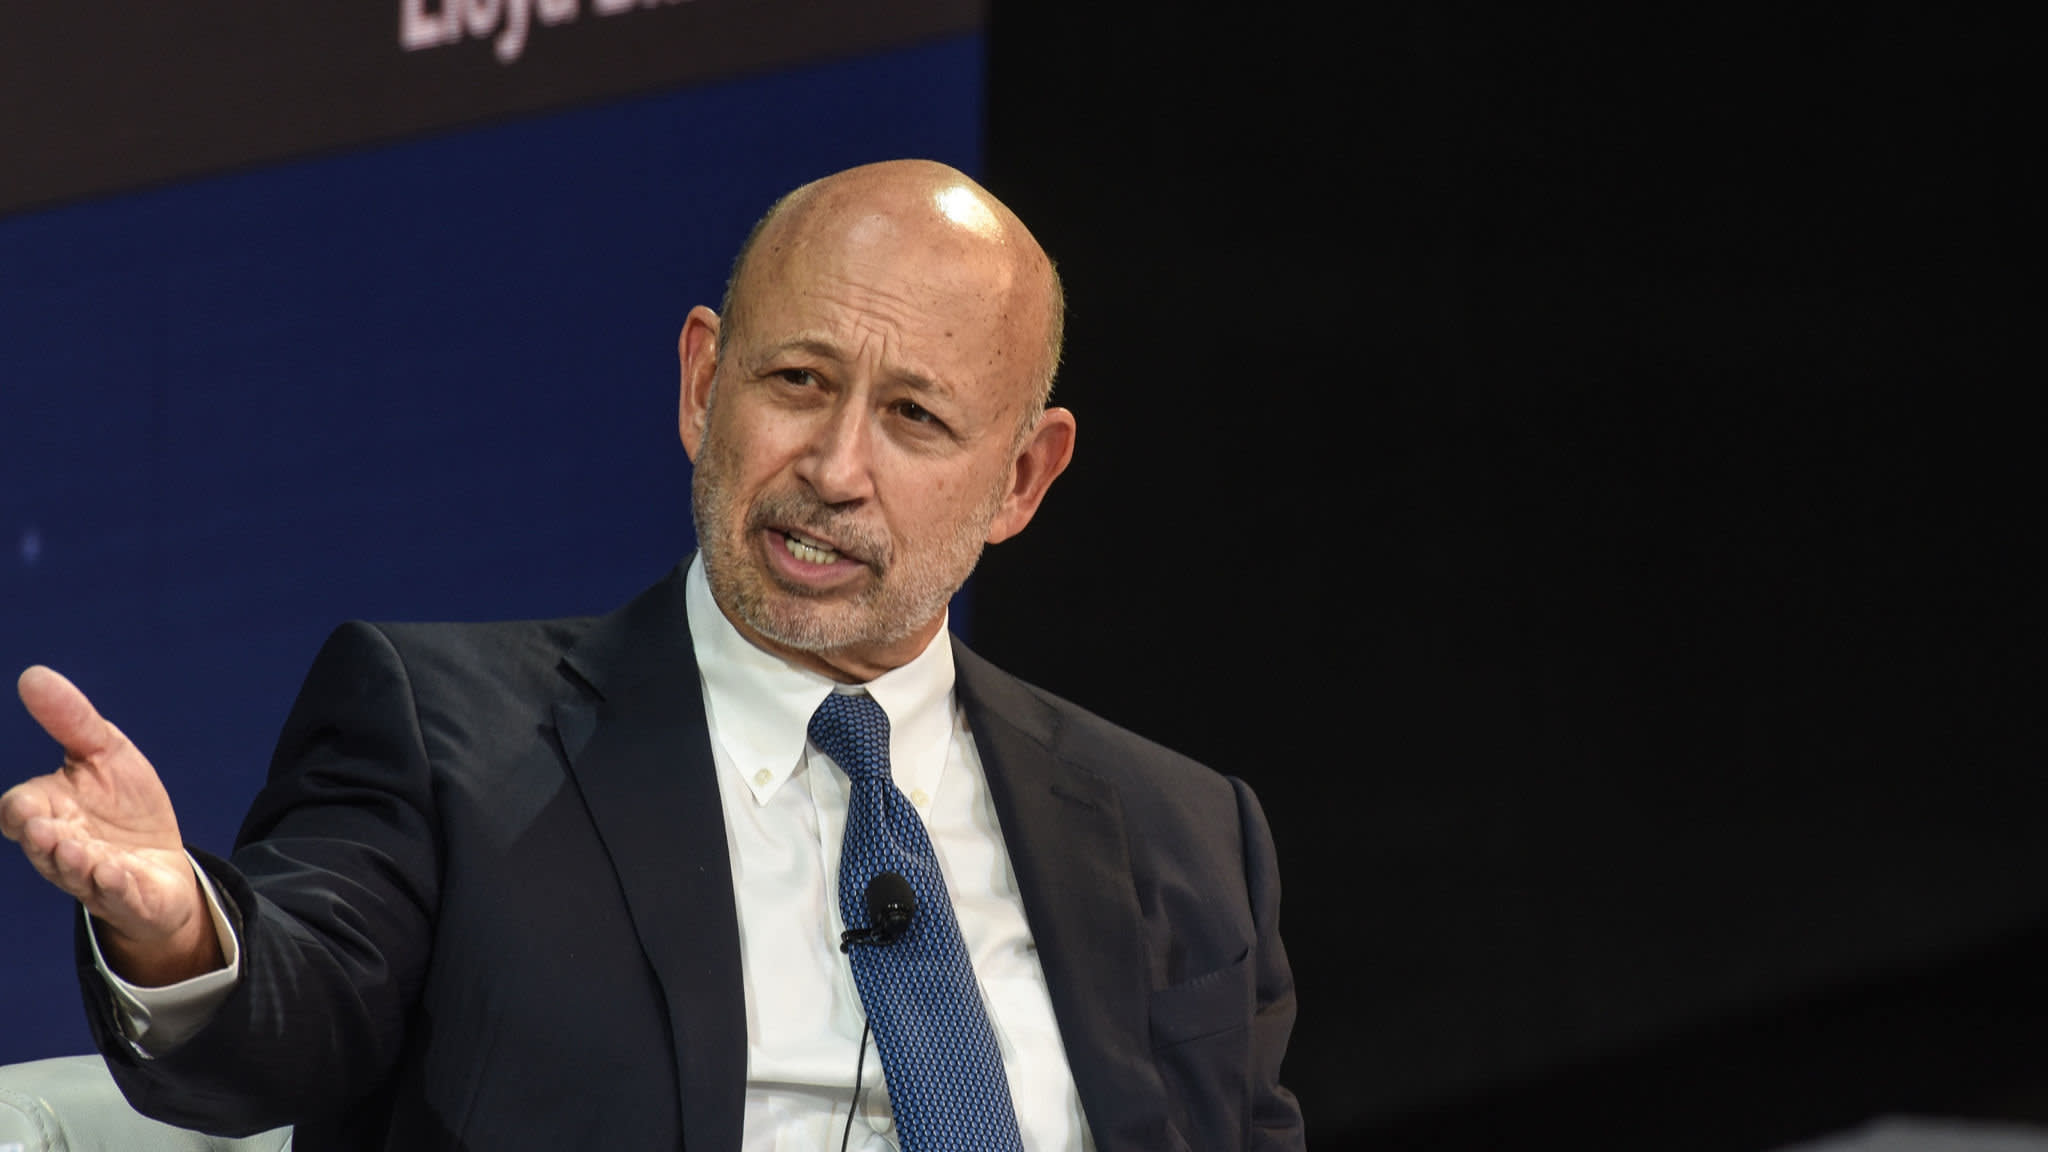 Blankfein met financier at heart of 1MDB scandal